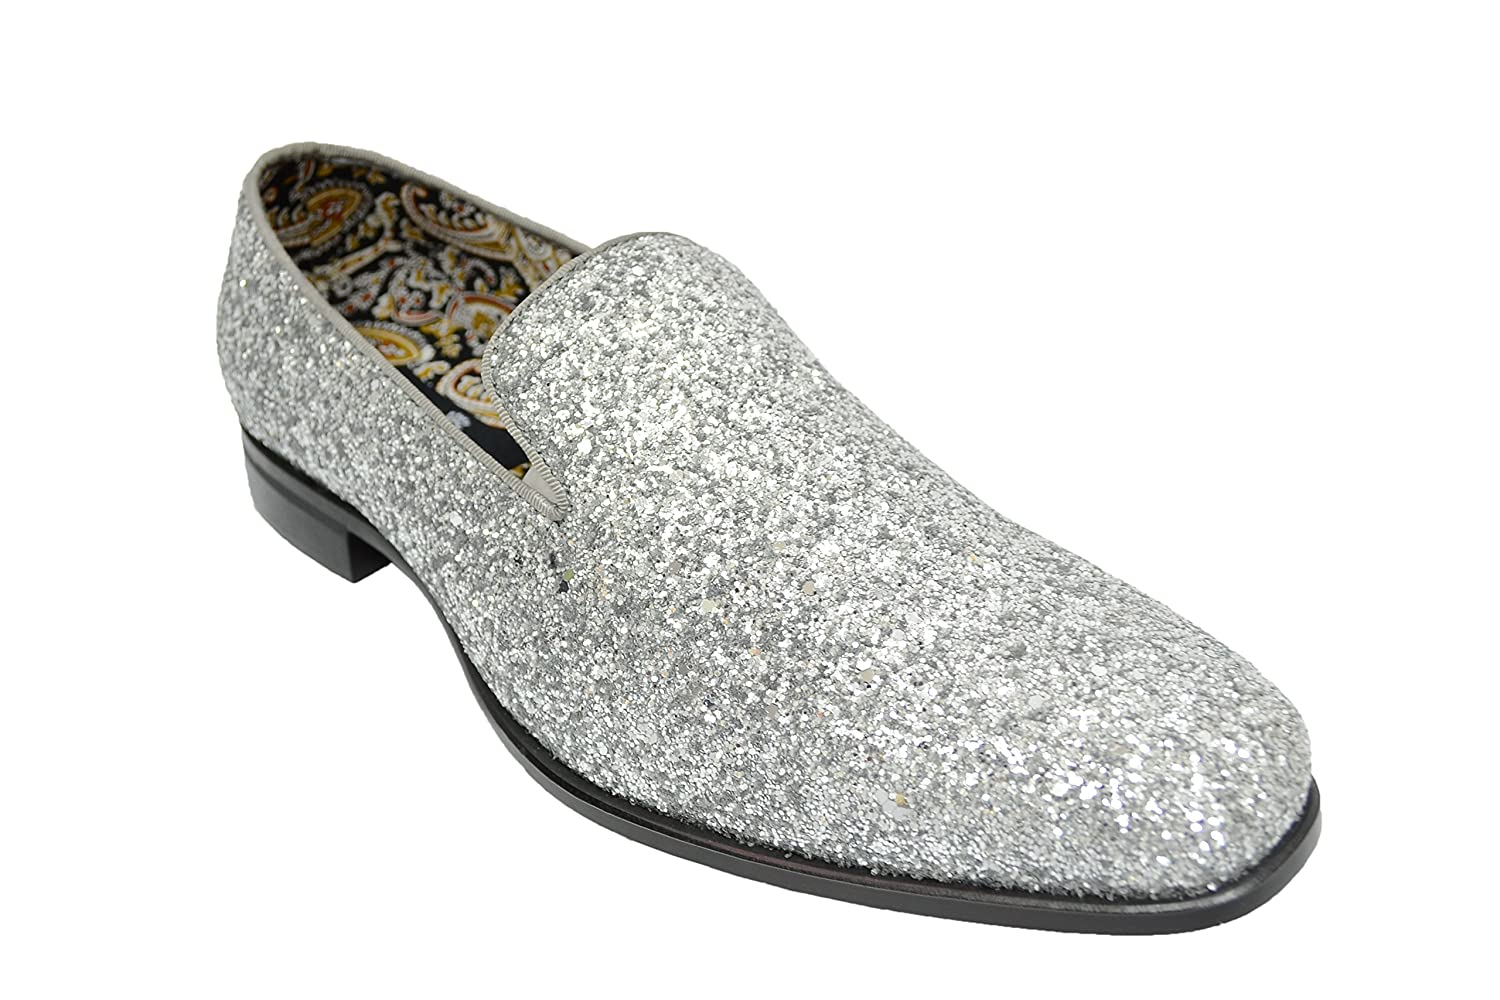 Men's Sparkly Glitter Shoes Silver Tuxedo Club Slip Ons 6683